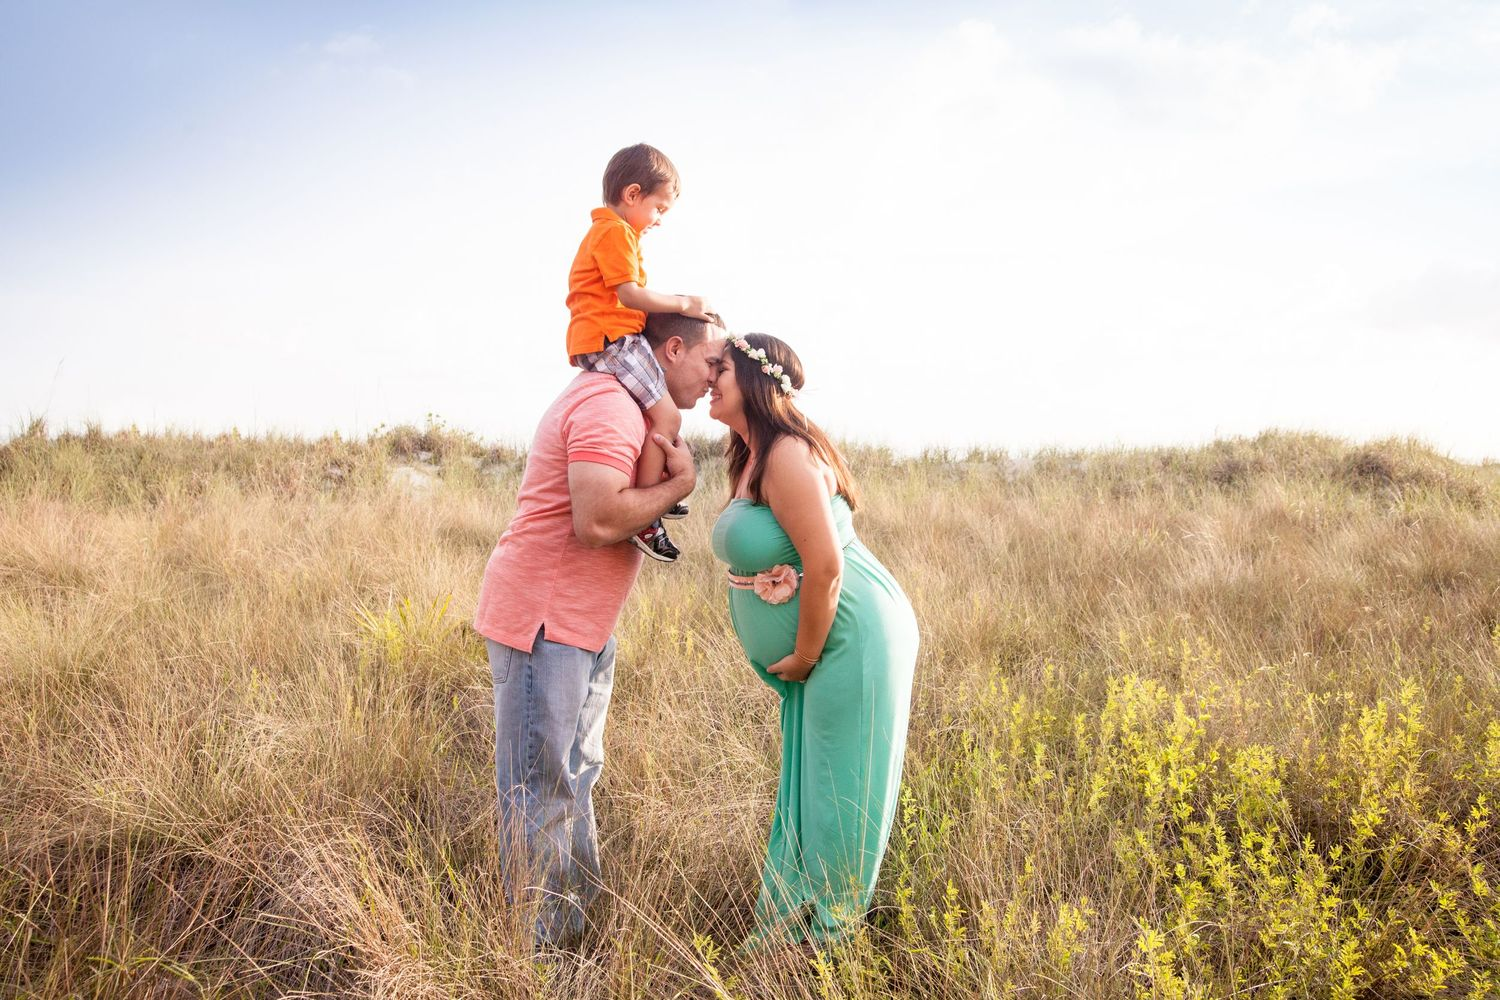 abundant grace photography, affordable maternity photography, Honeymoon Island, Dunedin